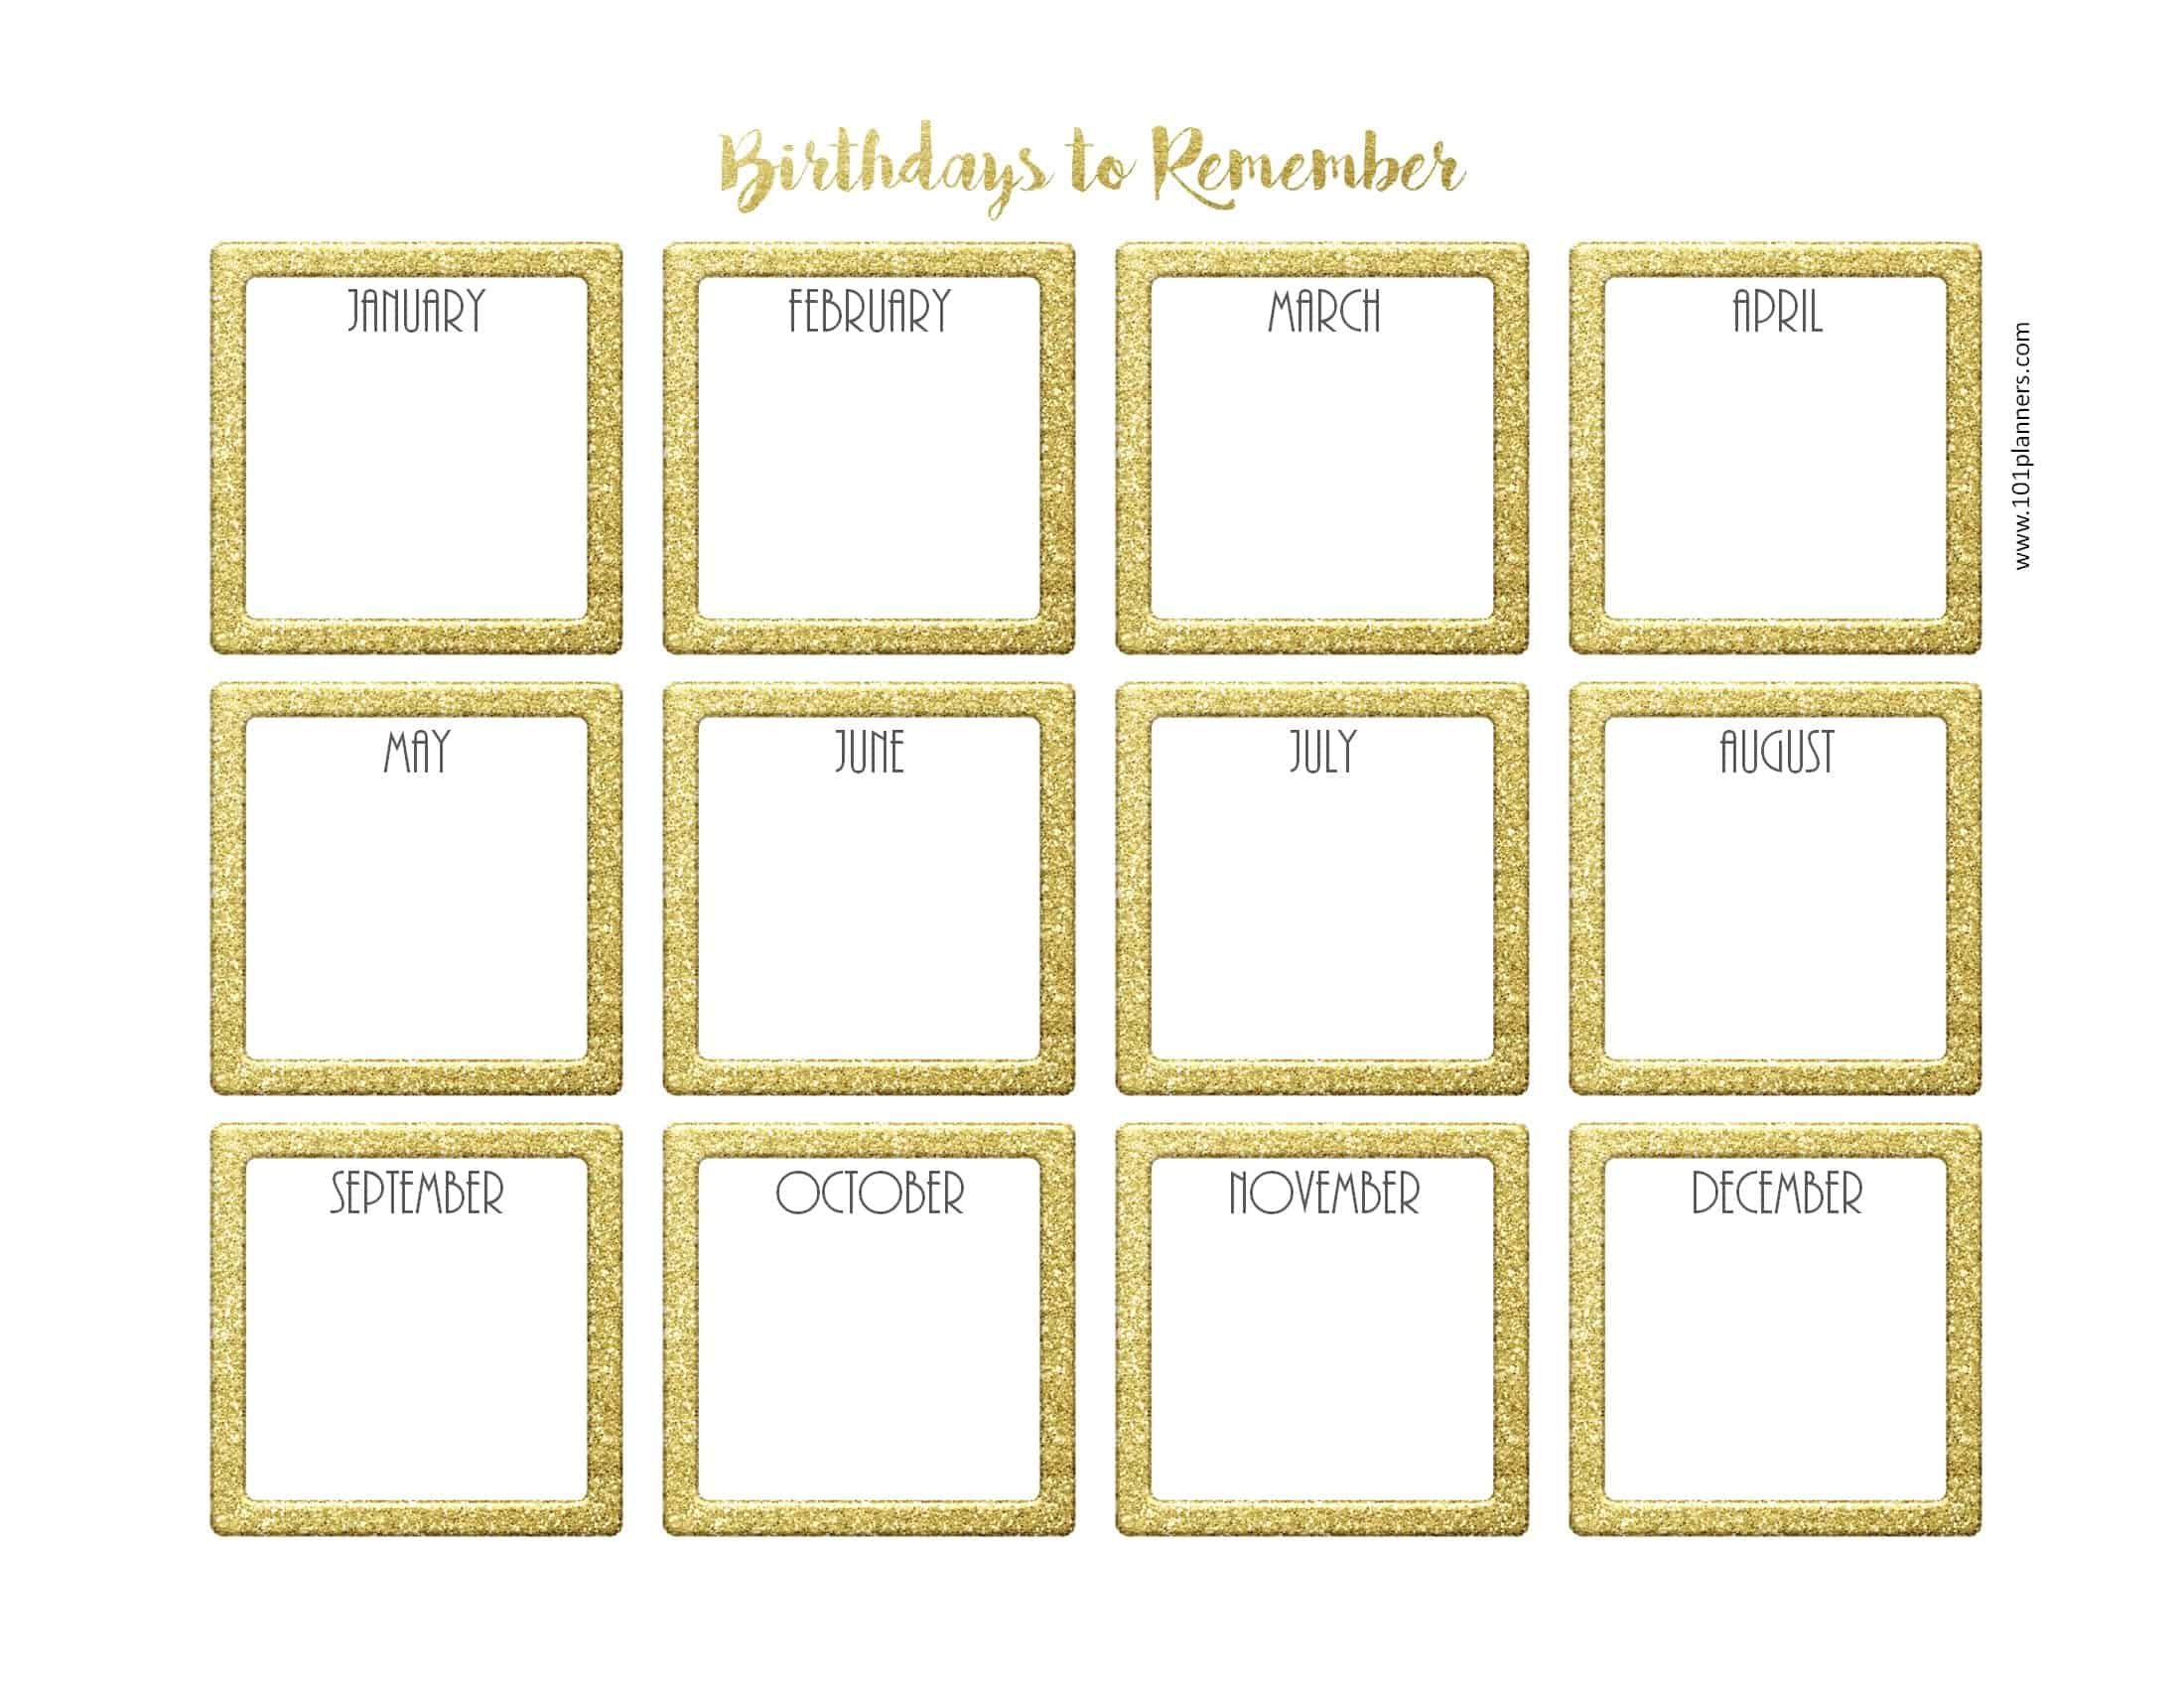 Free Birthday Calendar | Printable & Customizable | Many Designs! with regard to Edited Birthday Calendar Template